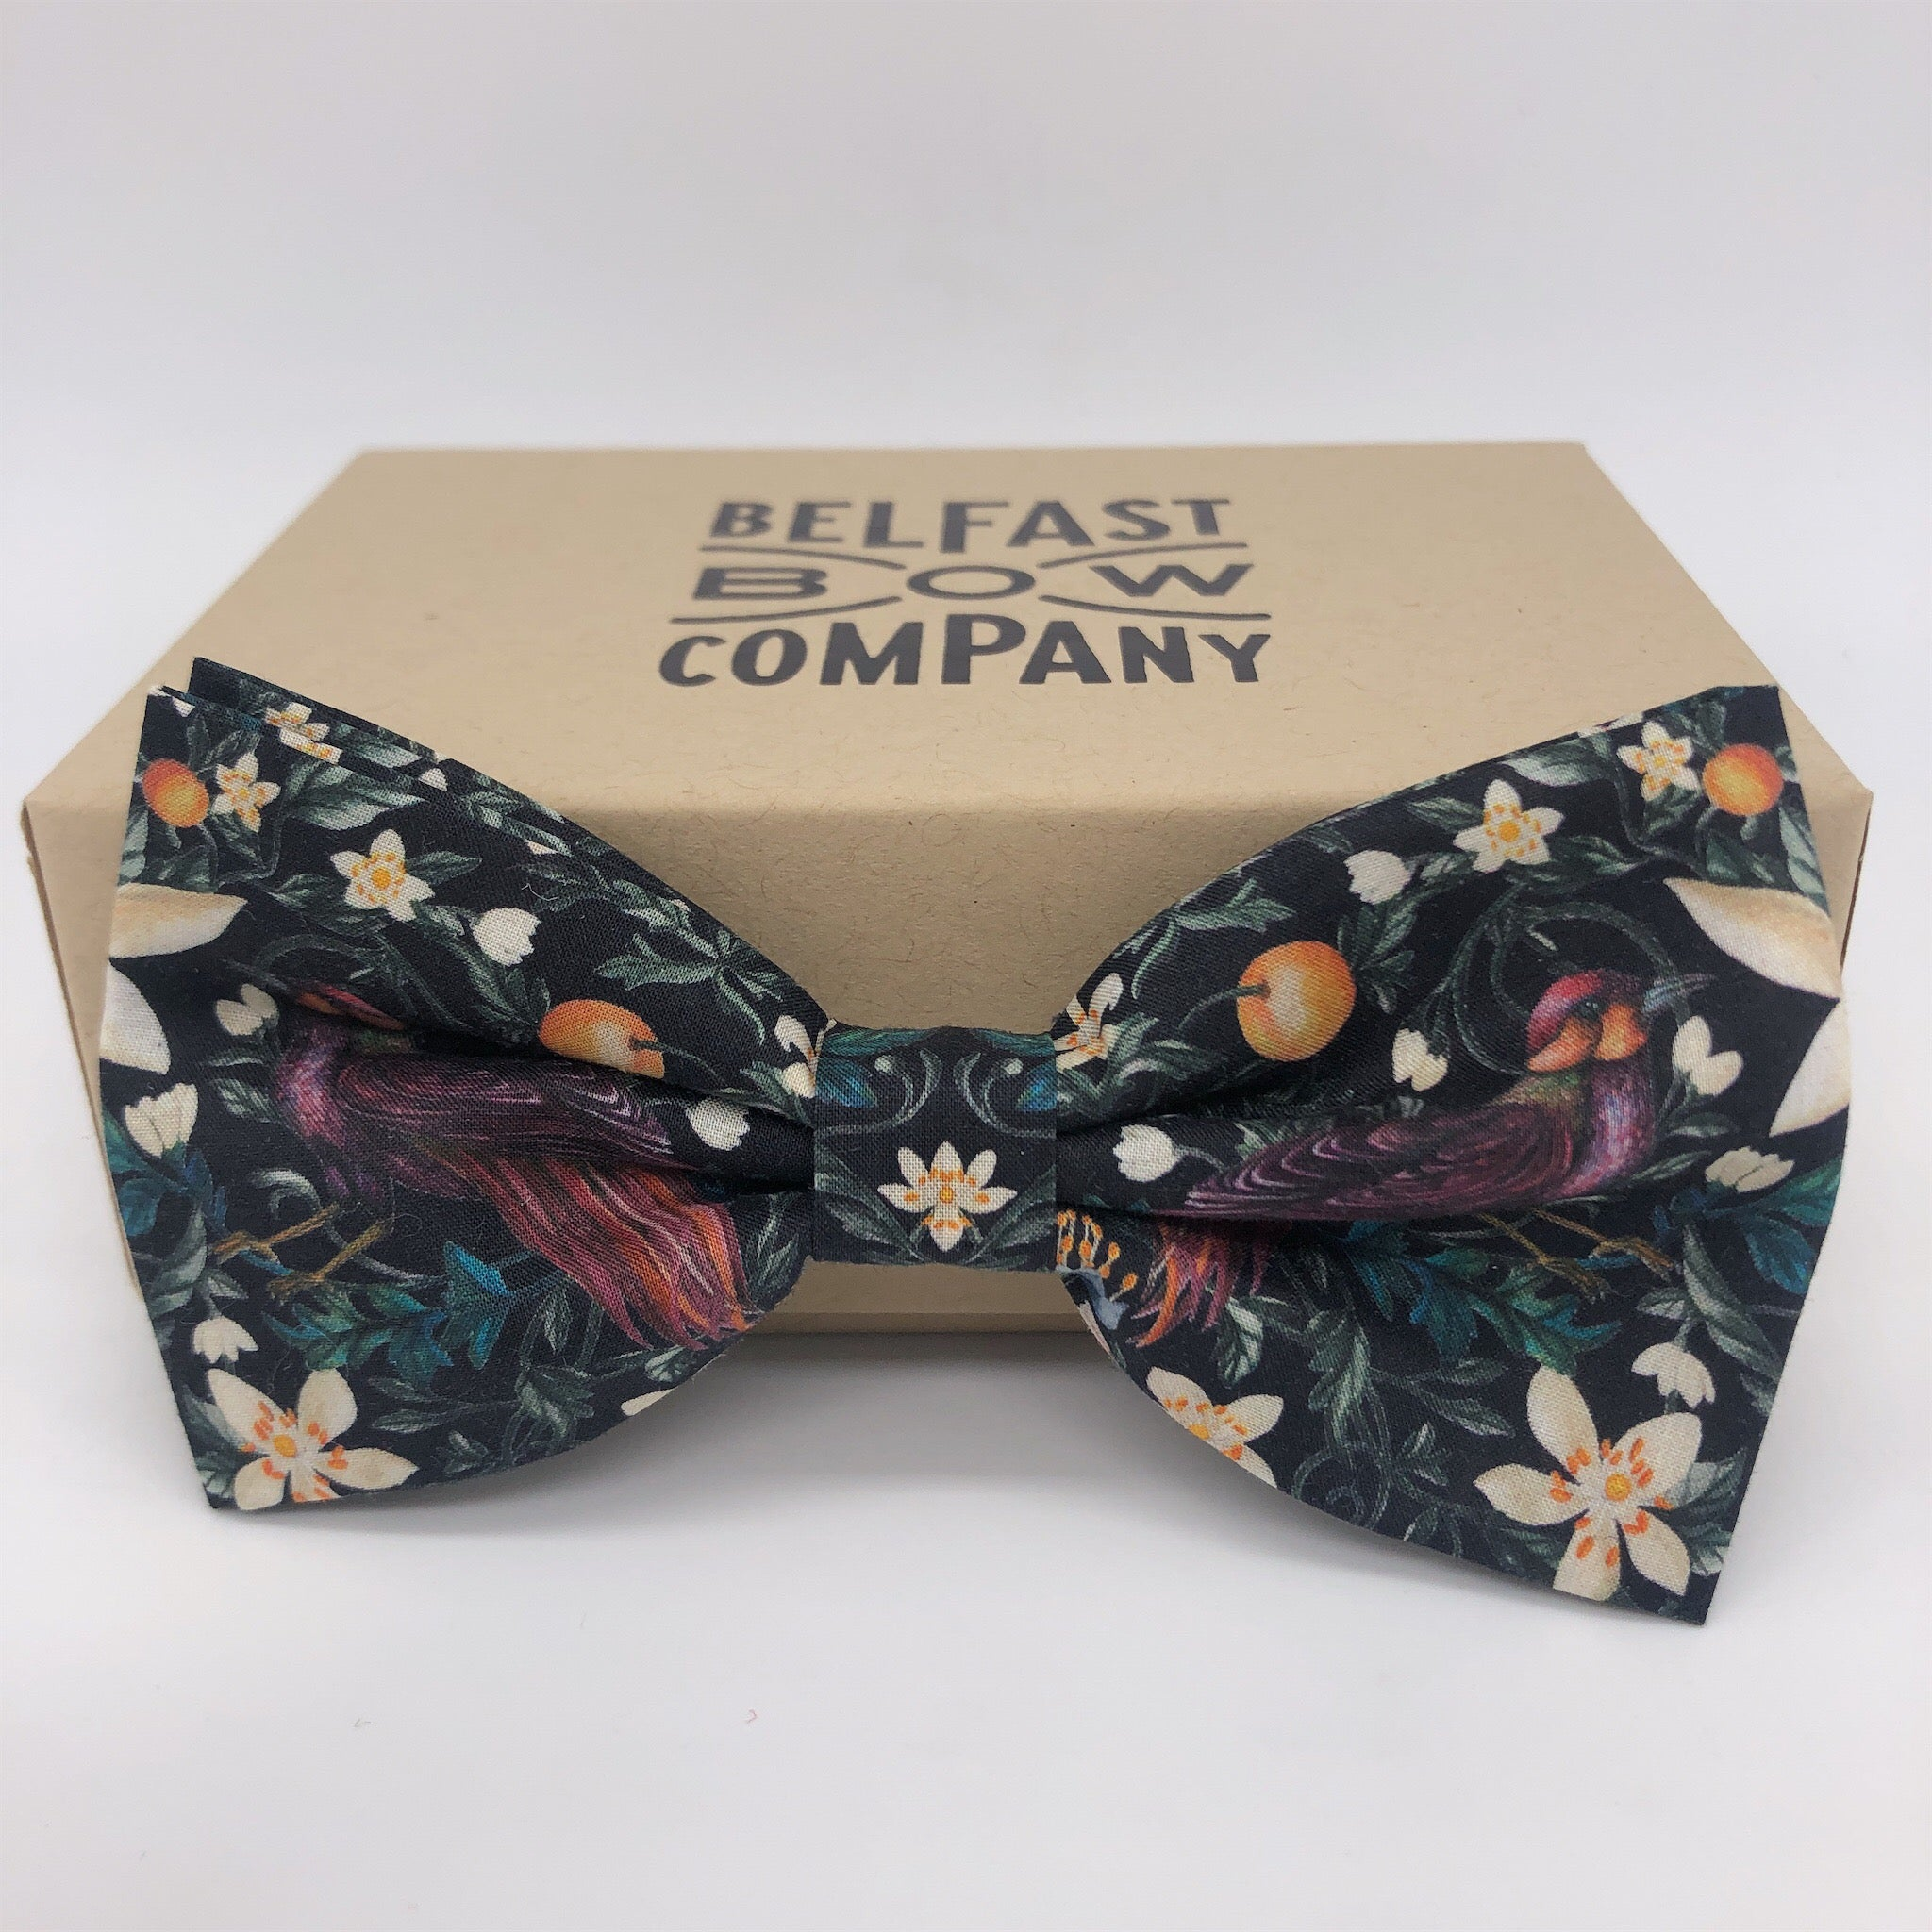 Liberty of London Bow Tie in Forbidden Fruit by the Belfast Bow Company